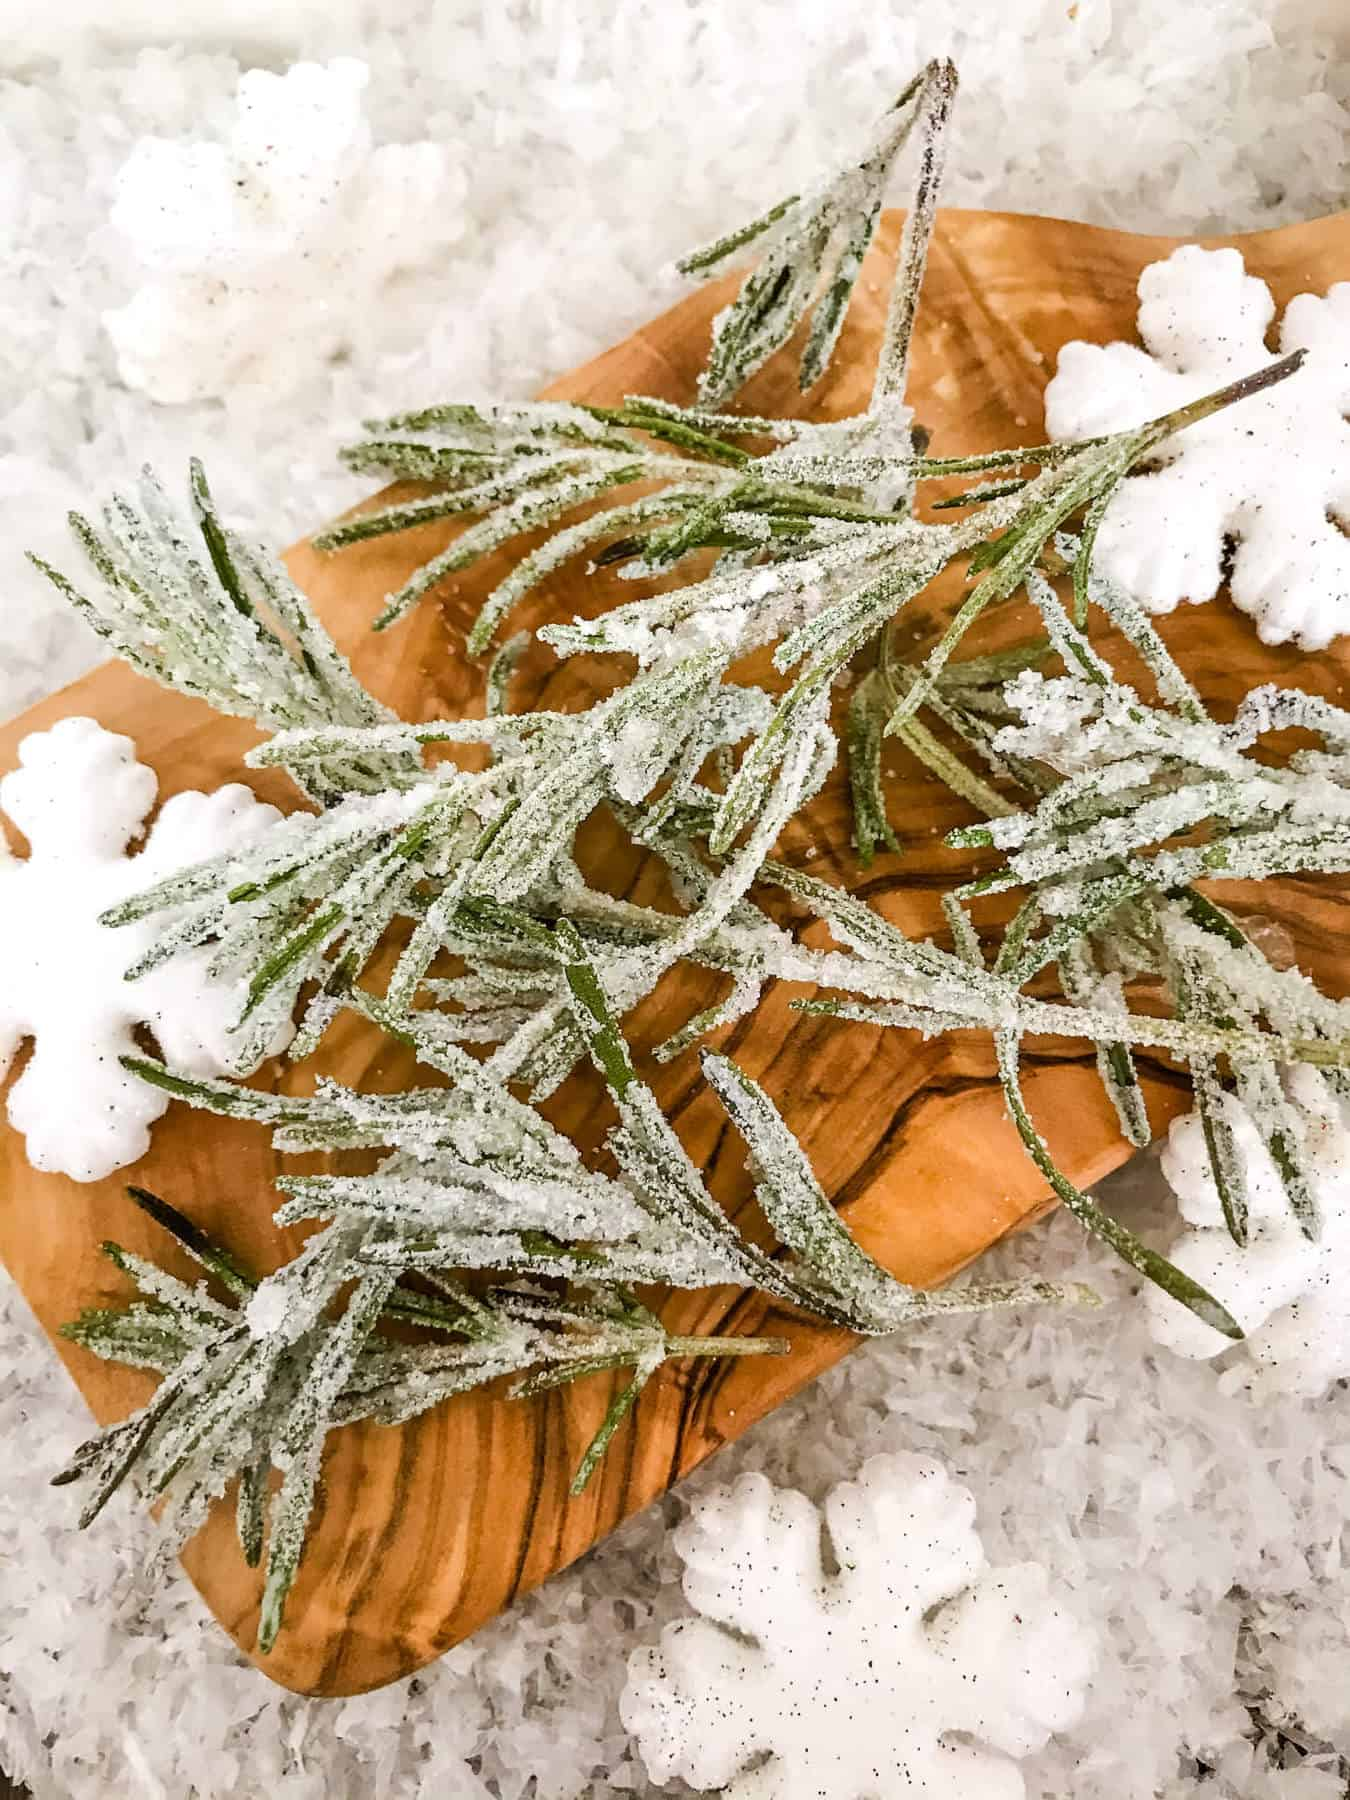 Frosted herbs with snow around it on a cutting board